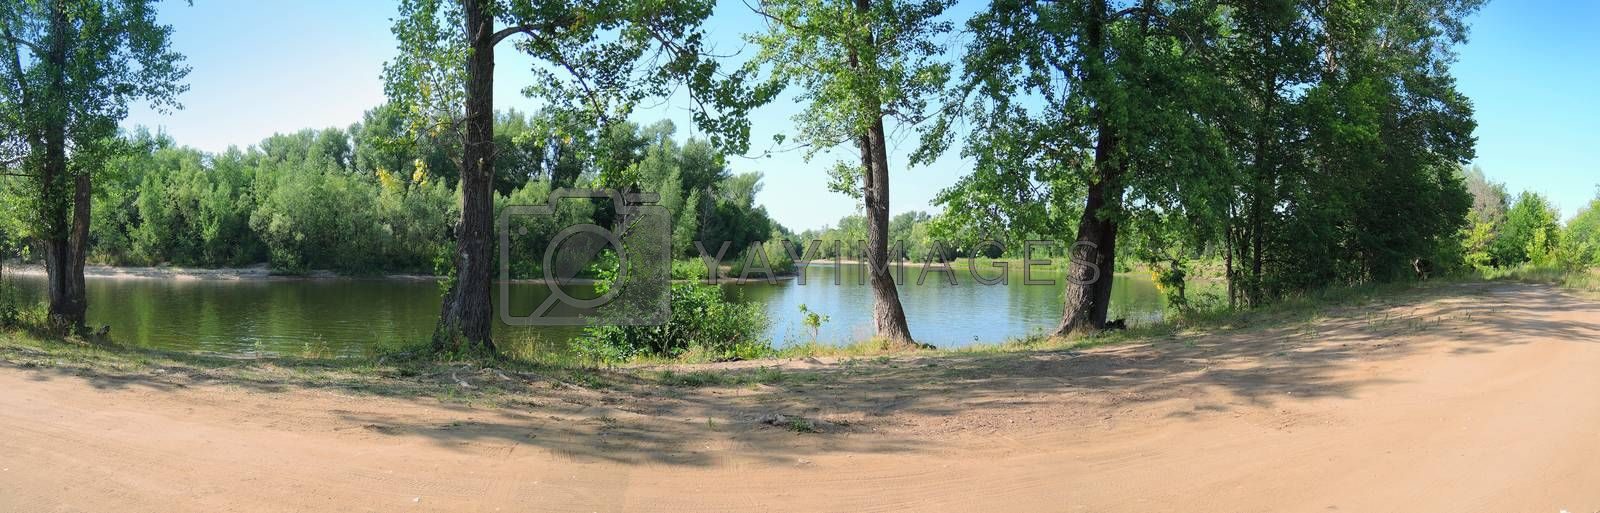 panorama of the river in the summer clear day